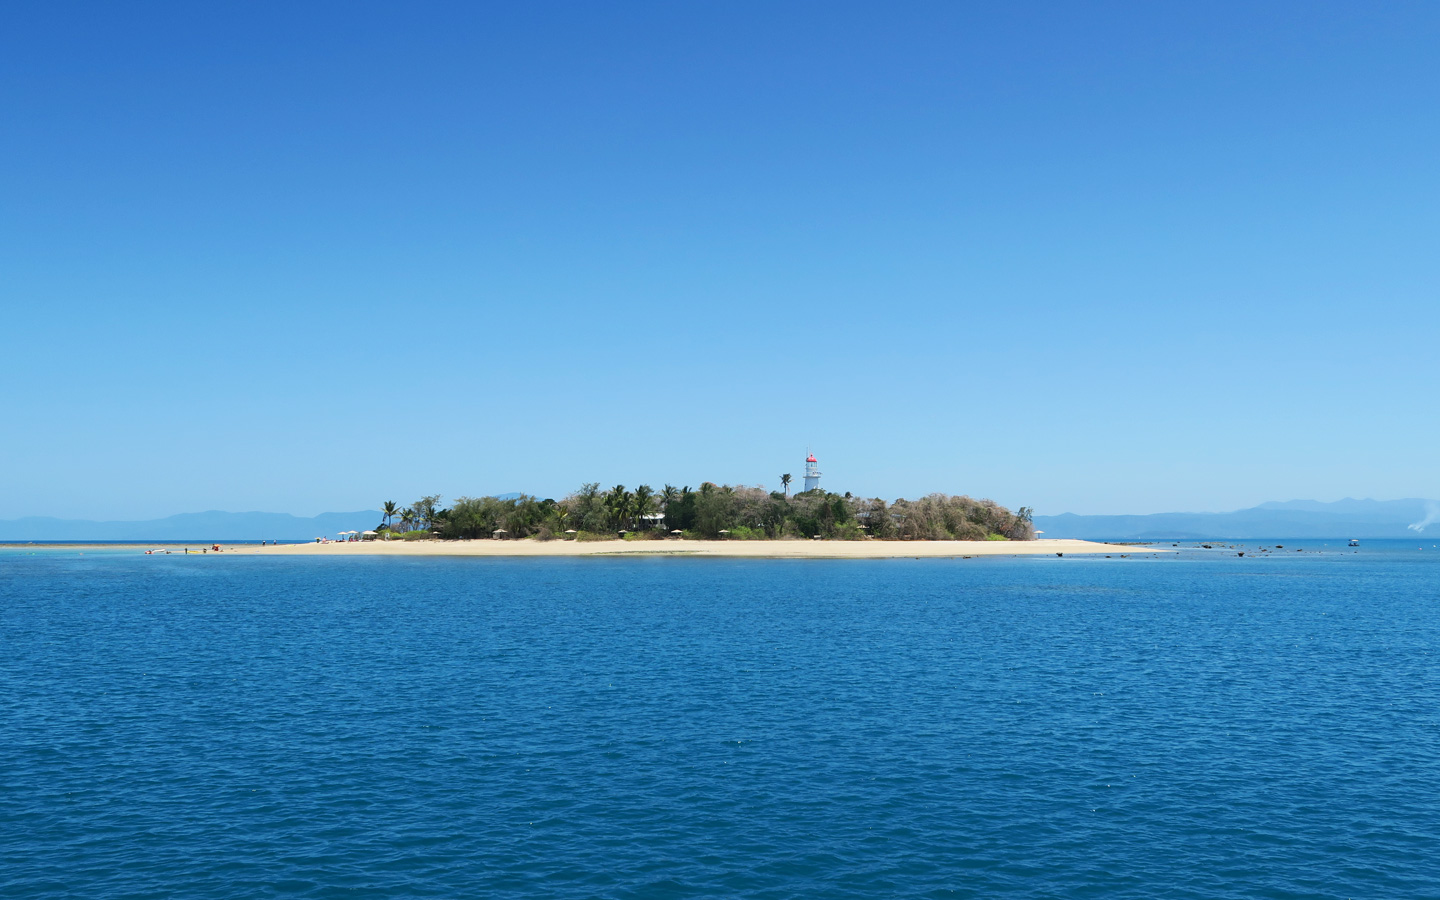 low island at the great barrier reef in australia